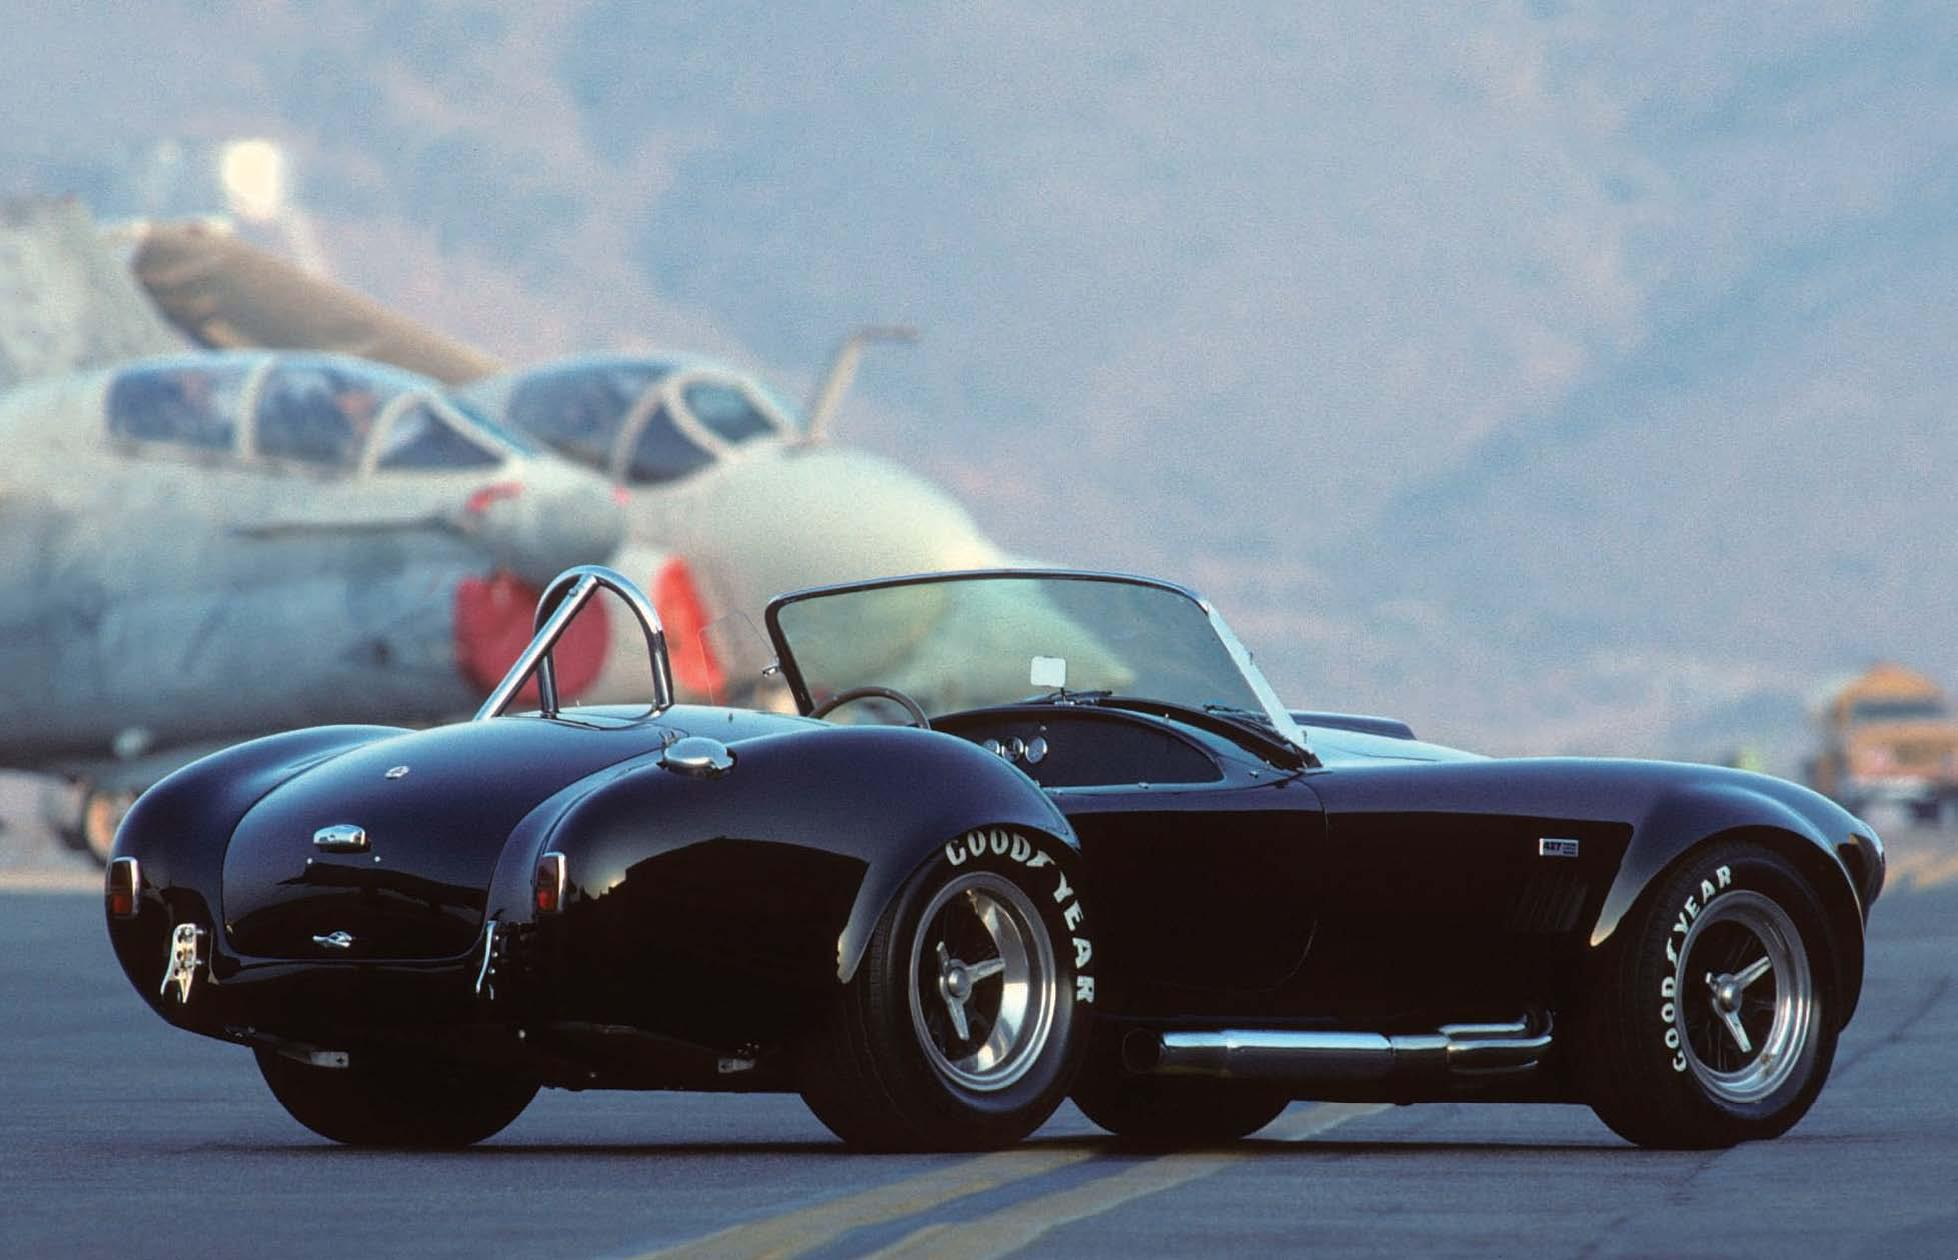 1967 Shelby 427 Cobra Csx3281 From Rm Auctions Jan 2010